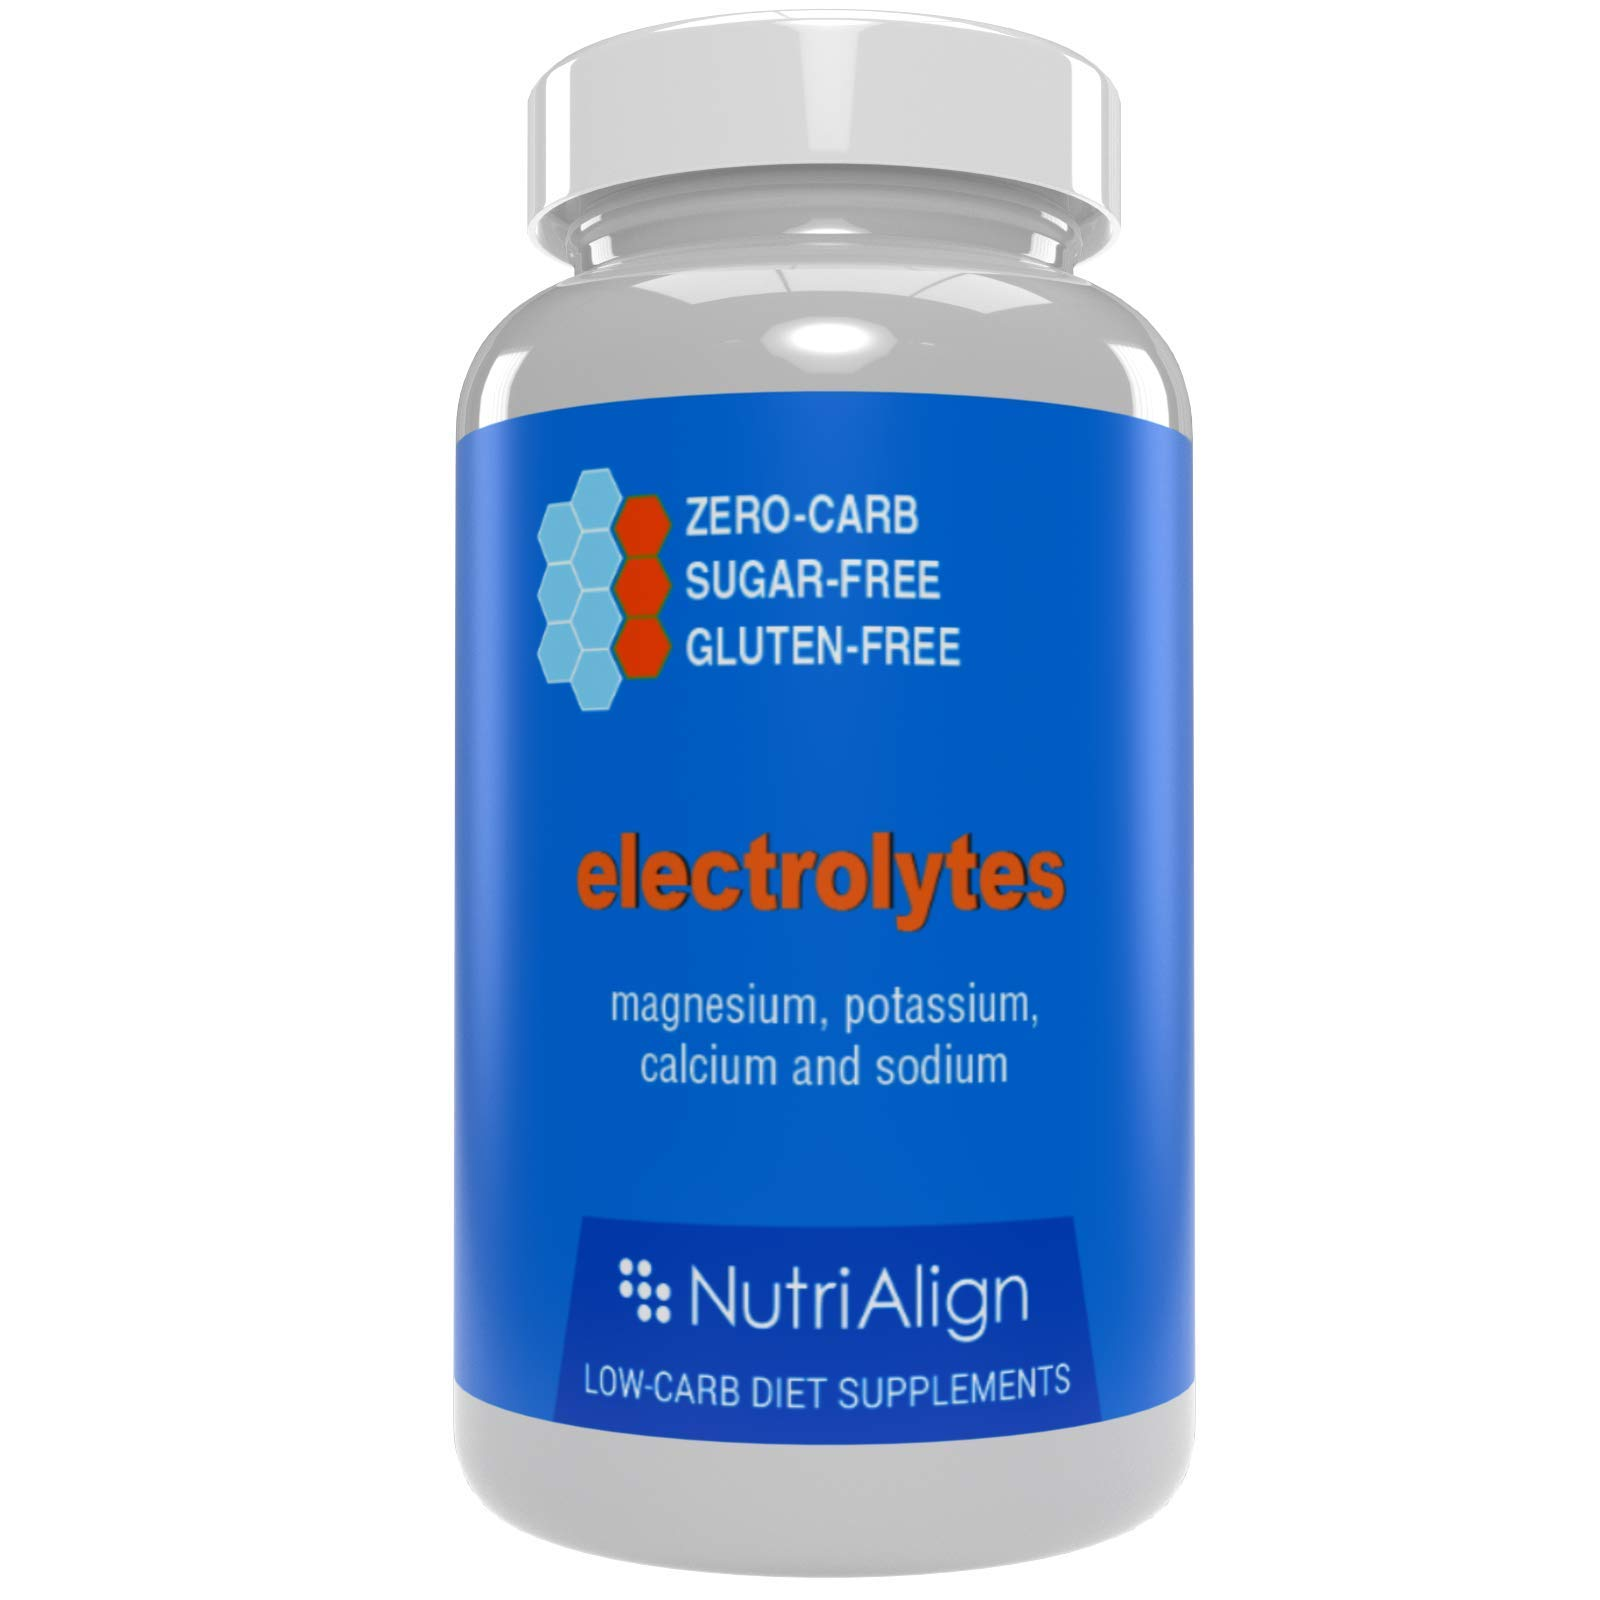 Nutri-Align Electrolytes: Magnesium, Potassium, Calcium, Sodium. Maintain Healthy Electrolytes Balance for Smooth Keto Adaptation. Sugar-Free, Gluten-Free, Zero-carb. 90 Capsules.